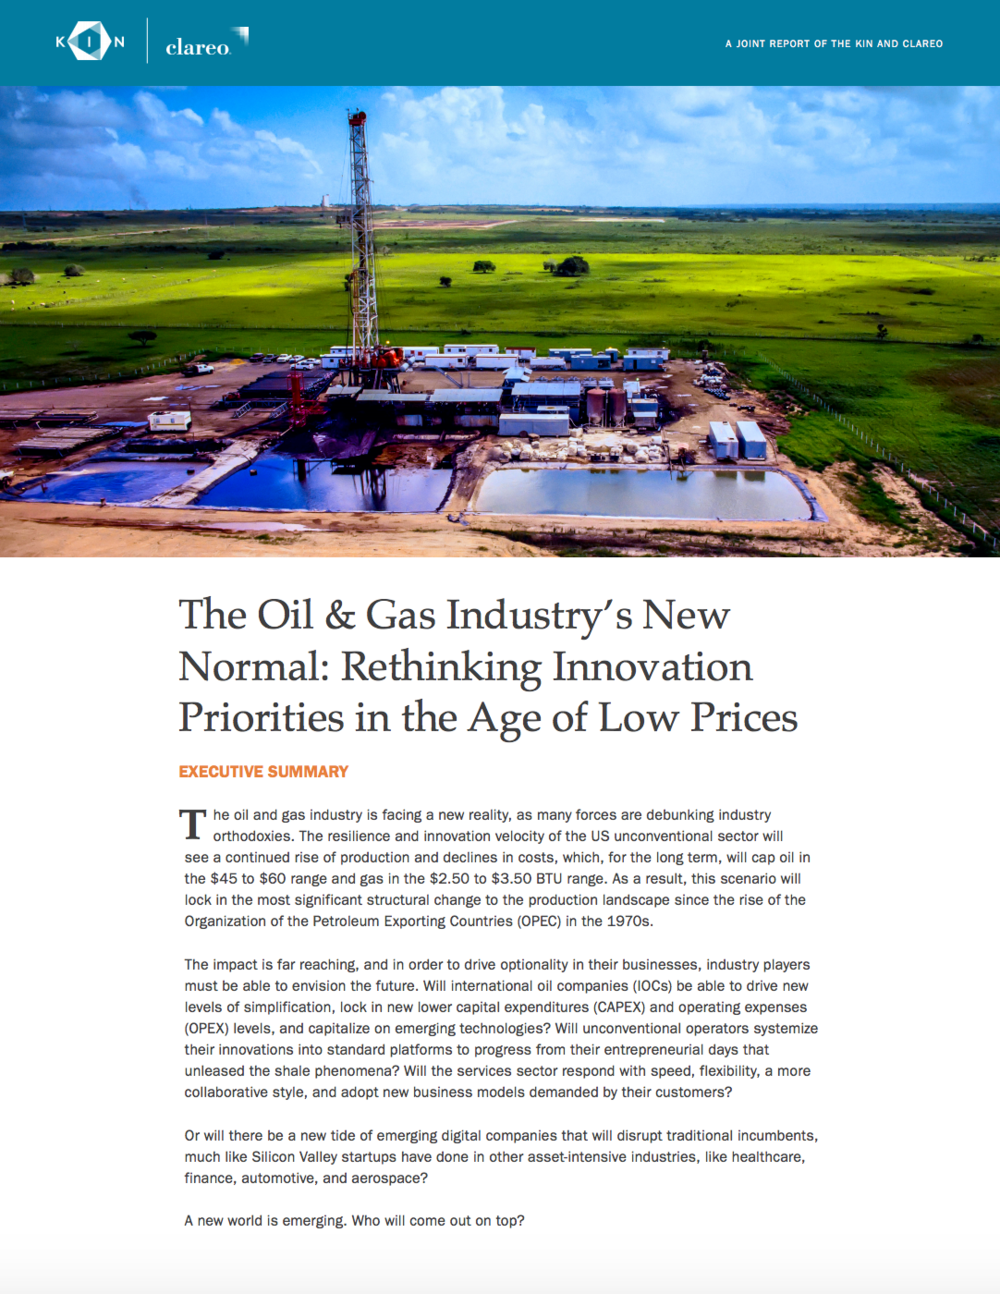 The Oil & Gas Industry's New Normal